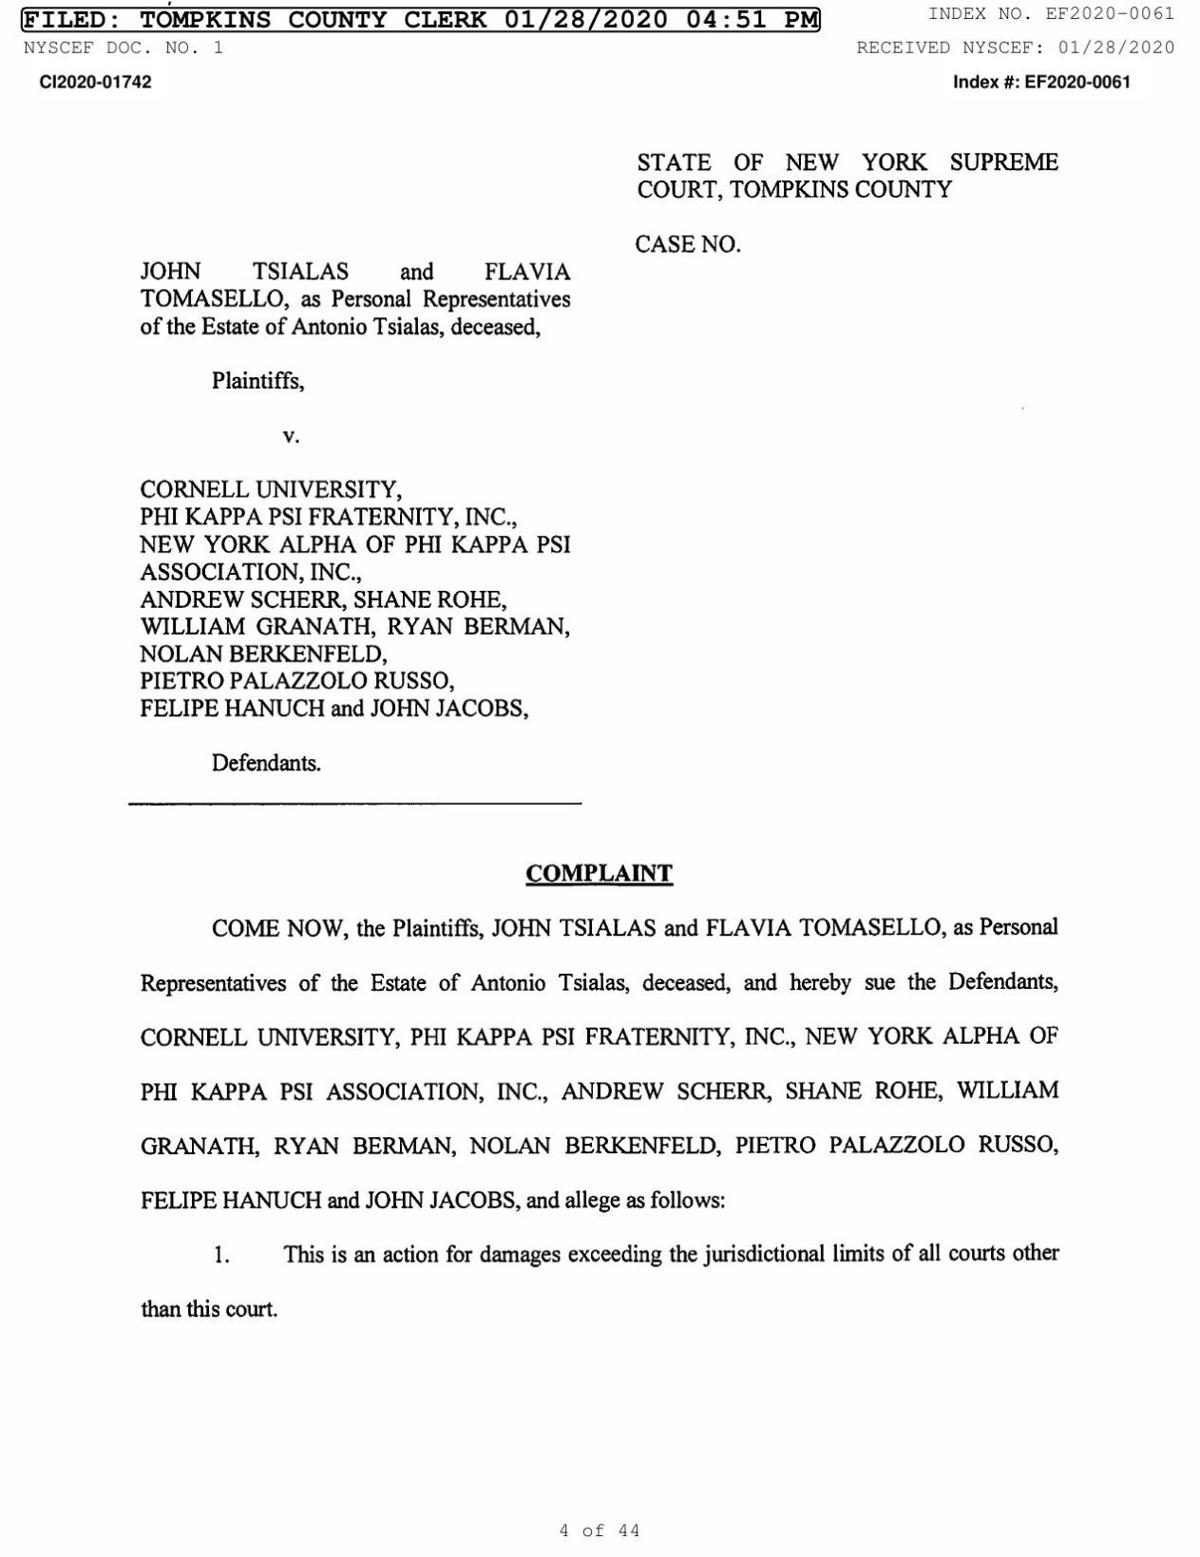 Antonio Tsialas lawsuit